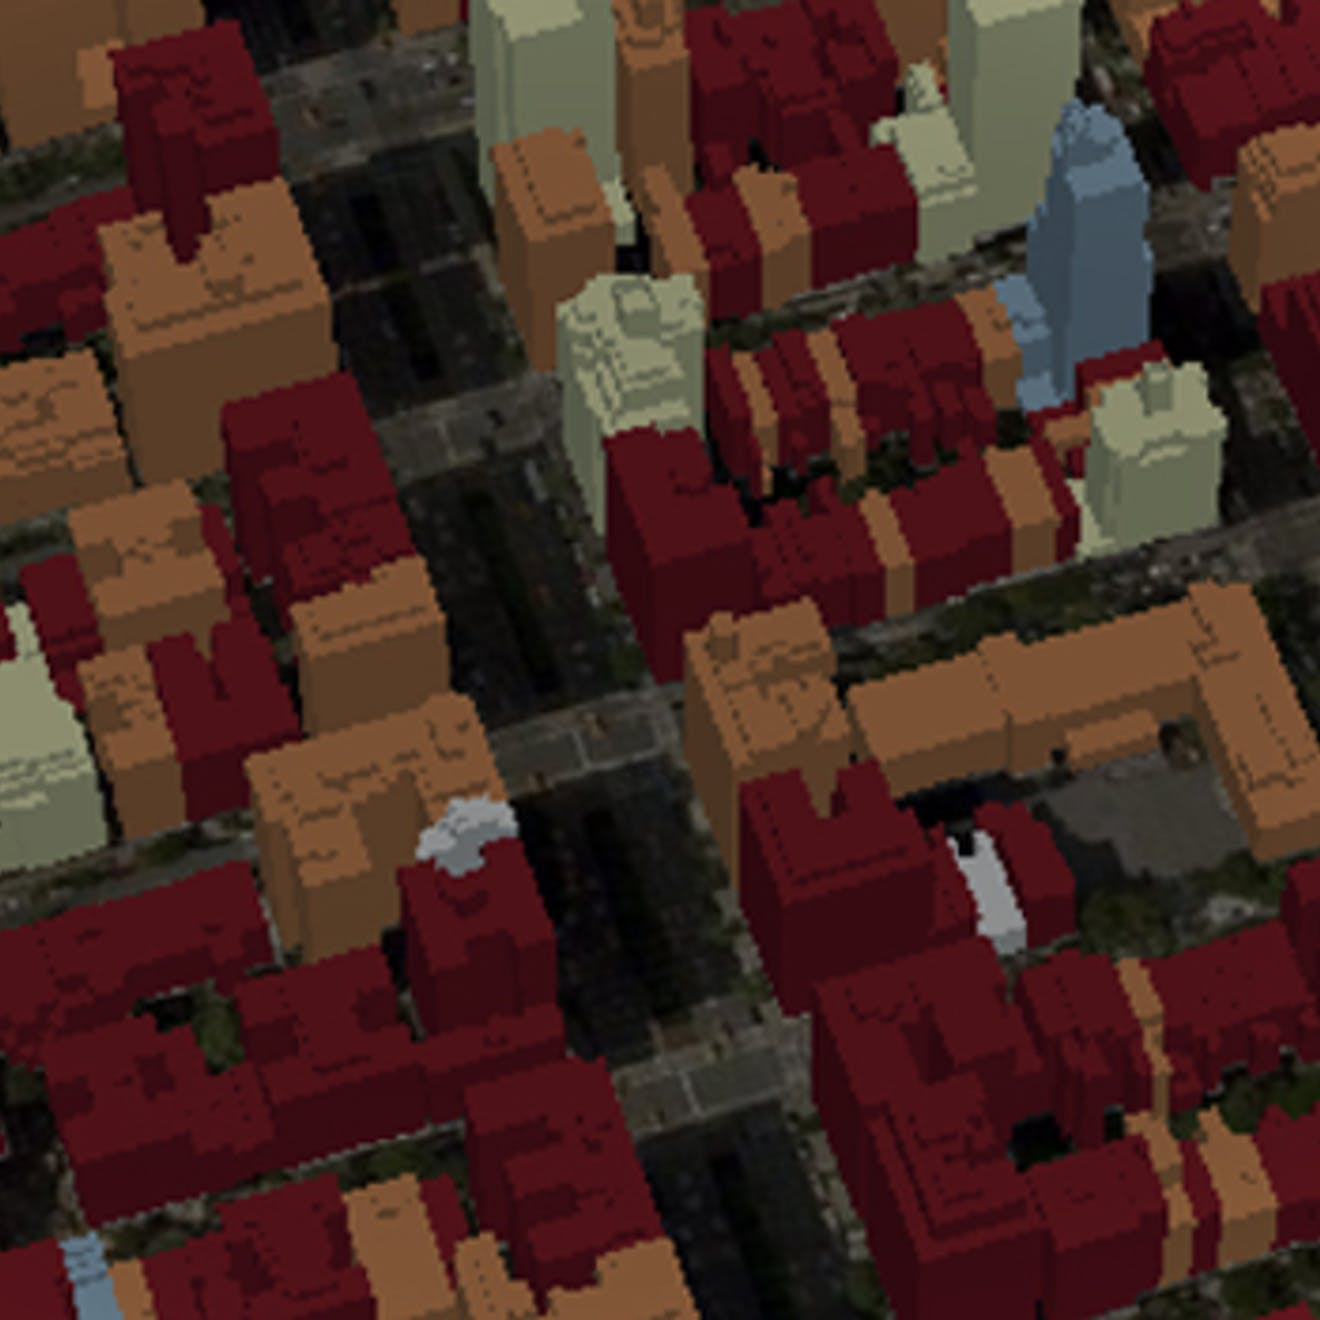 An aerial view of untextured models of 3D buildings, colored by year they were built